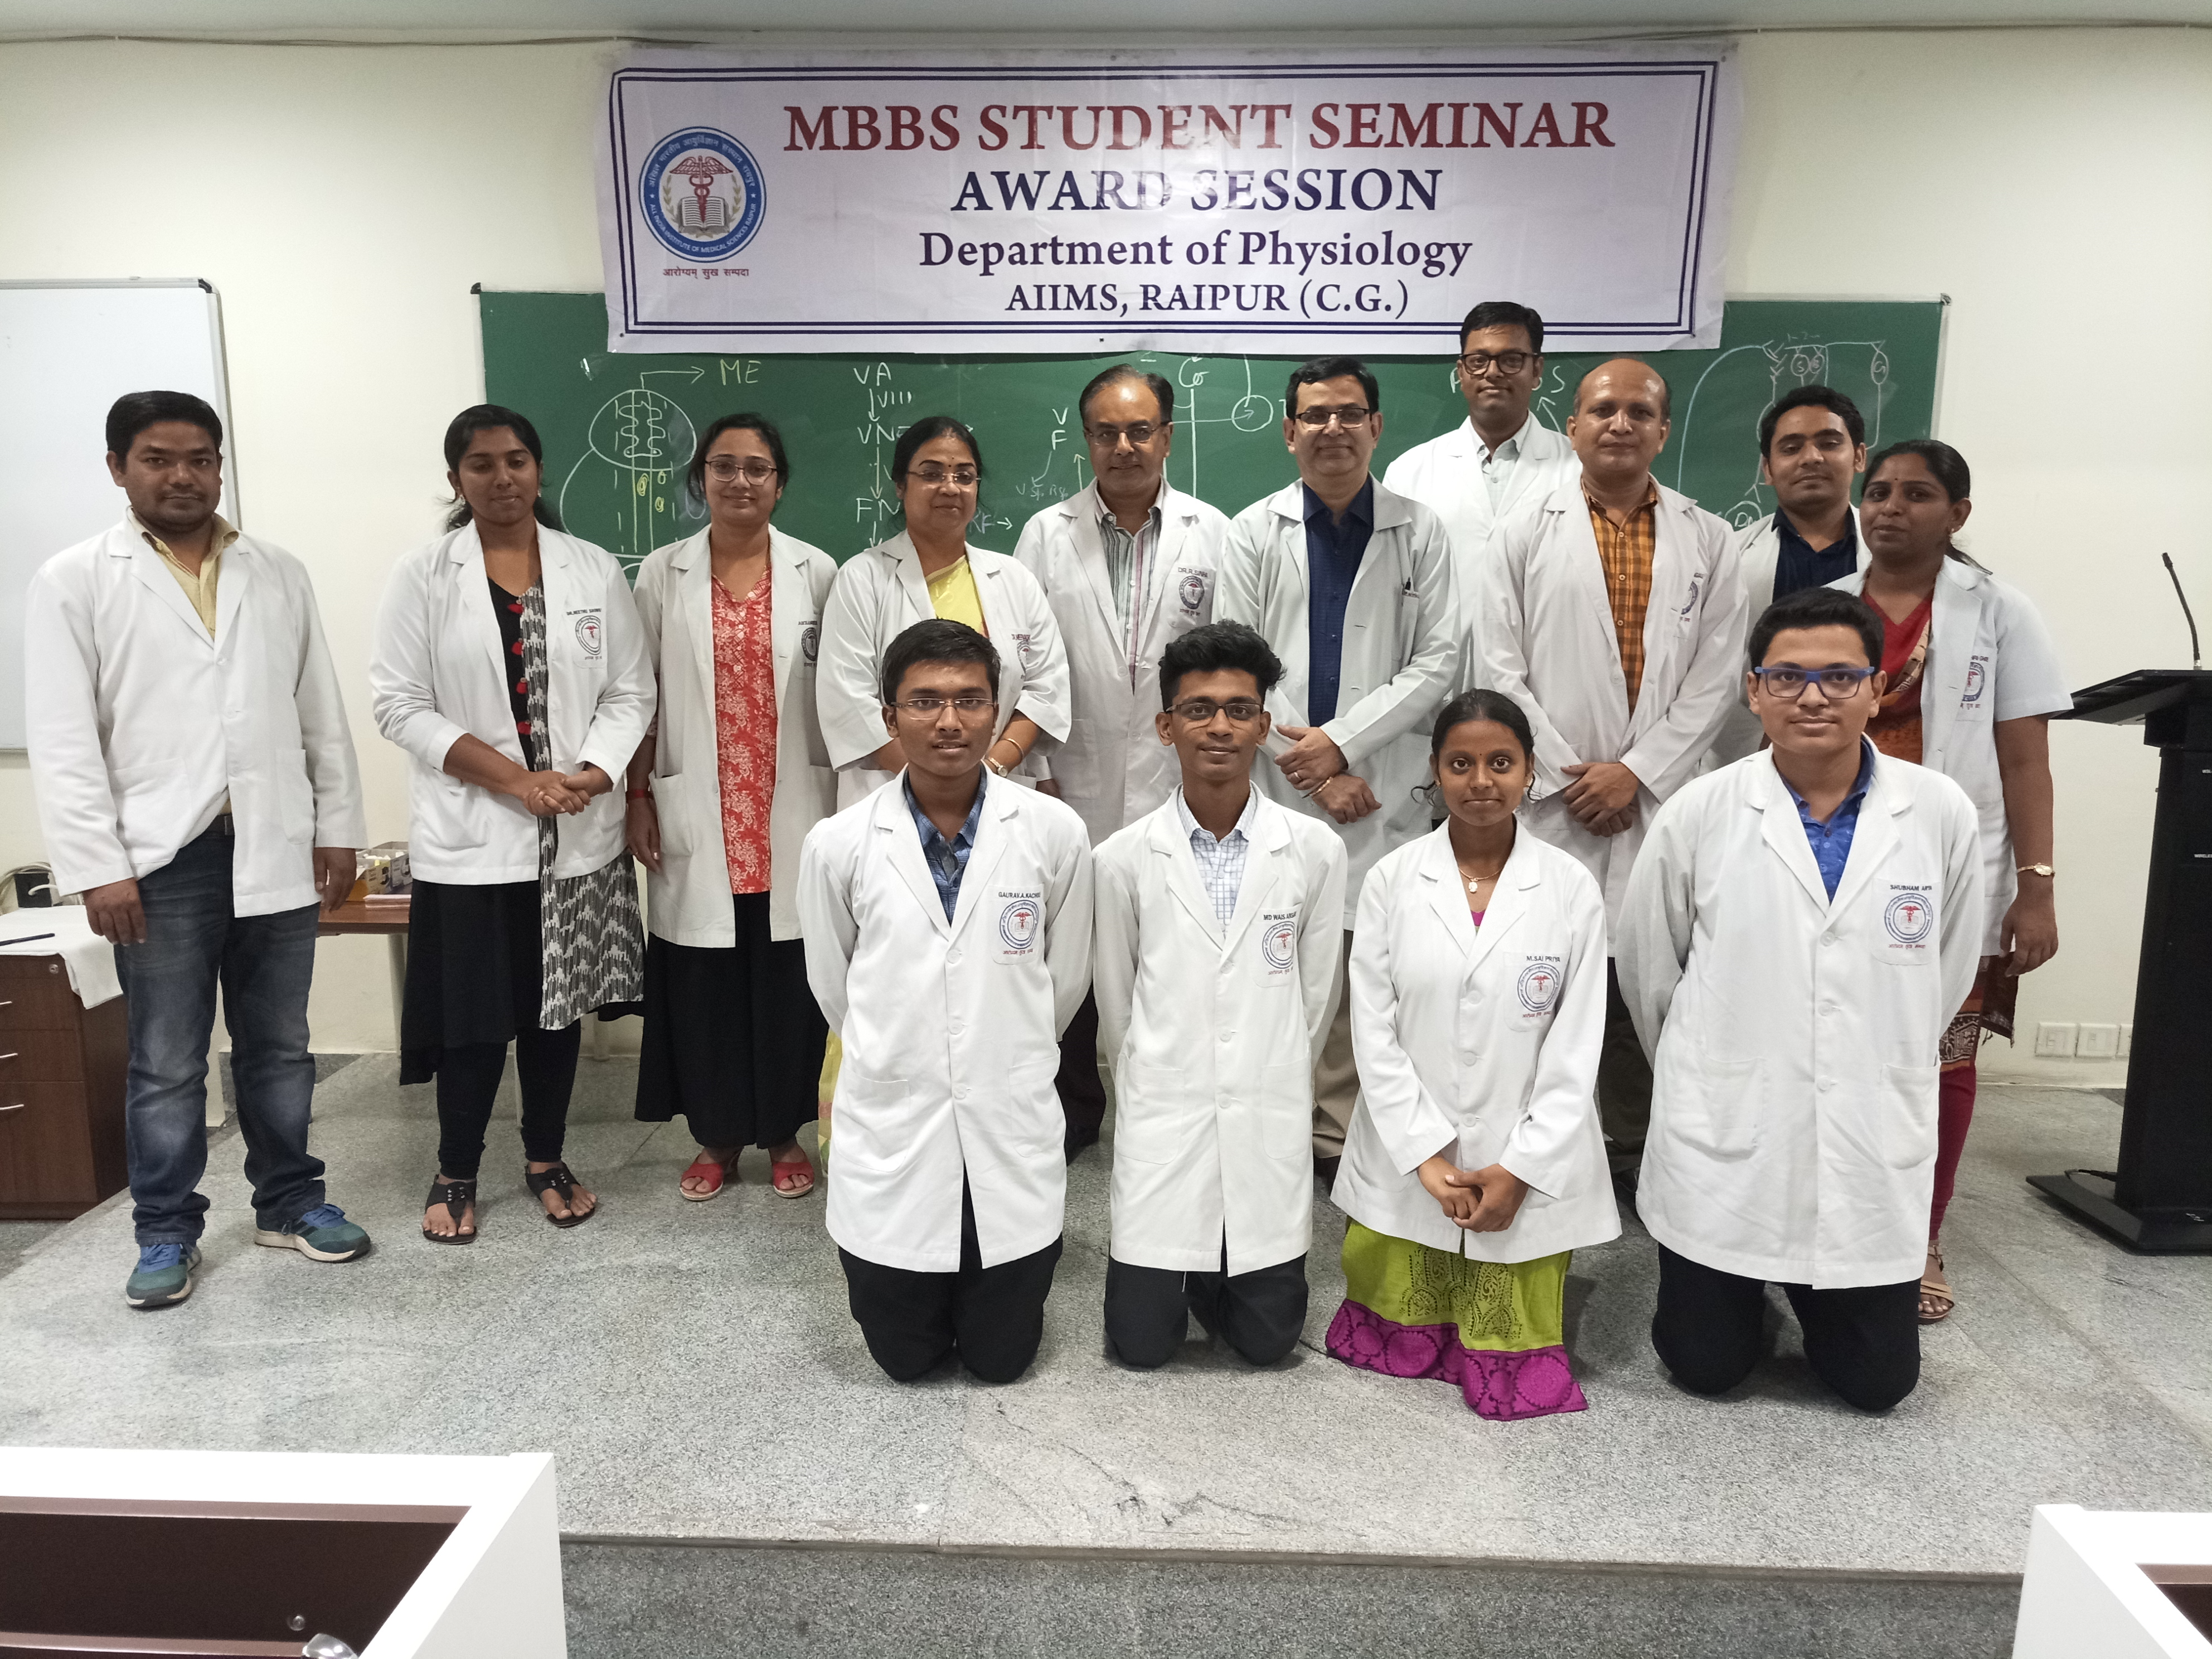 MBBS Students Seminar Award Session Department of Physiology,AIIMS,Raipur